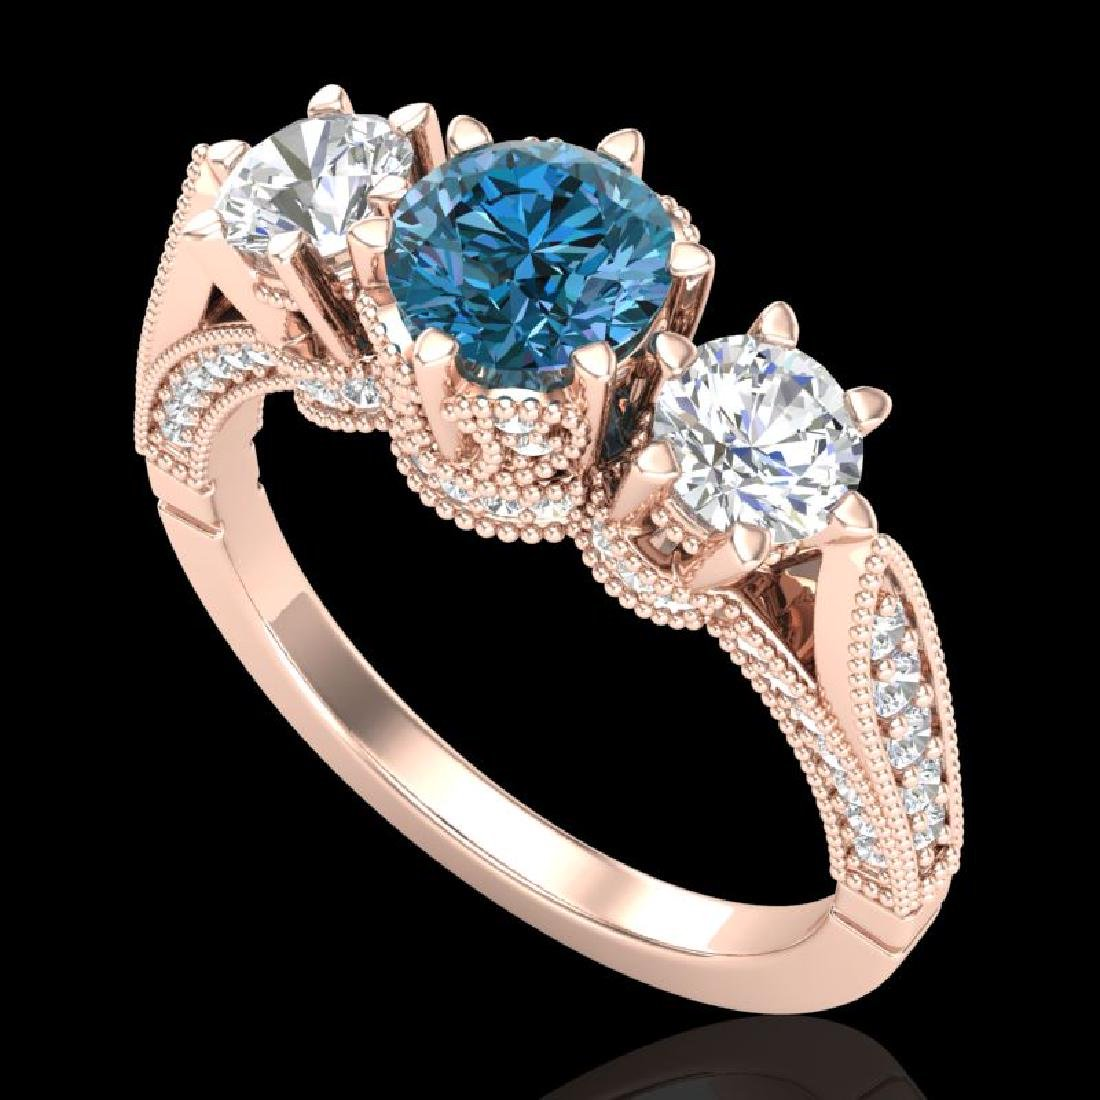 2.18 CTW Intense Blue Diamond Solitaire Art Deco 3